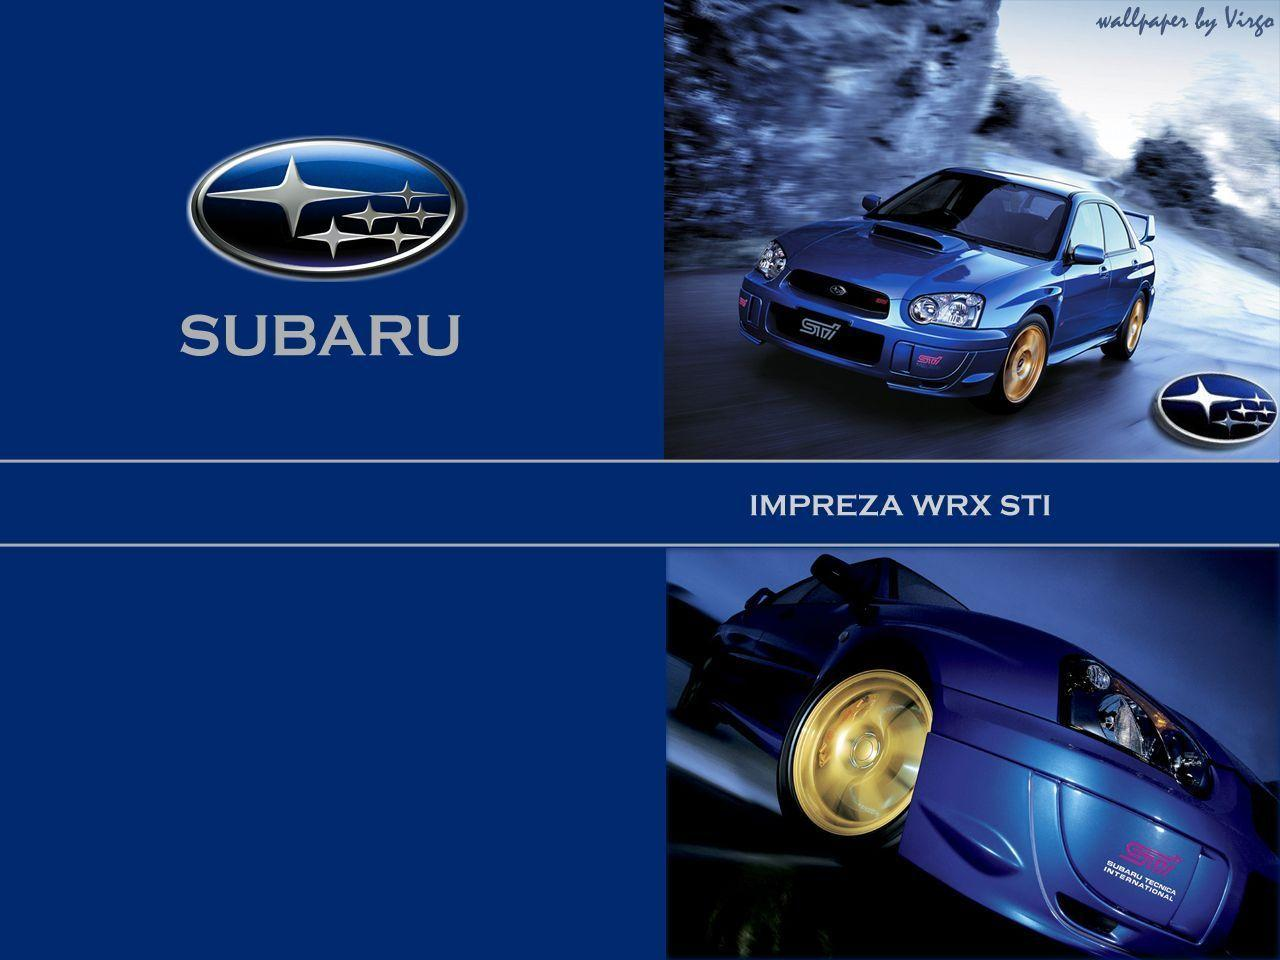 Desktop Wallpapers Subaru Logo 1024 X 640 88 Kb Jpeg